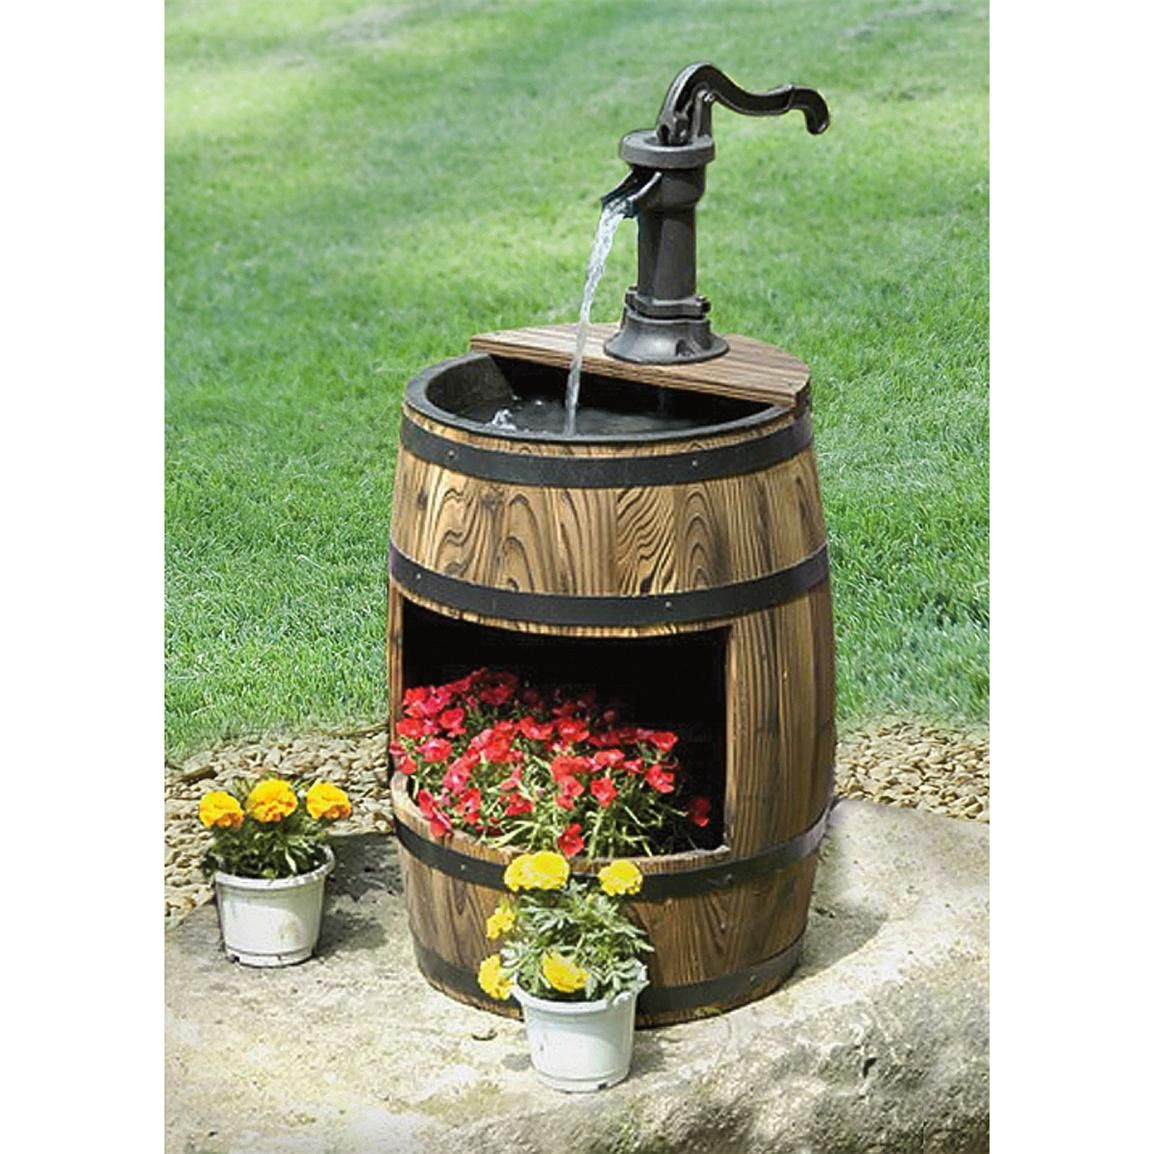 Whiskey Barrel Fountain with Planter | Outdoor Living | Pinterest ...